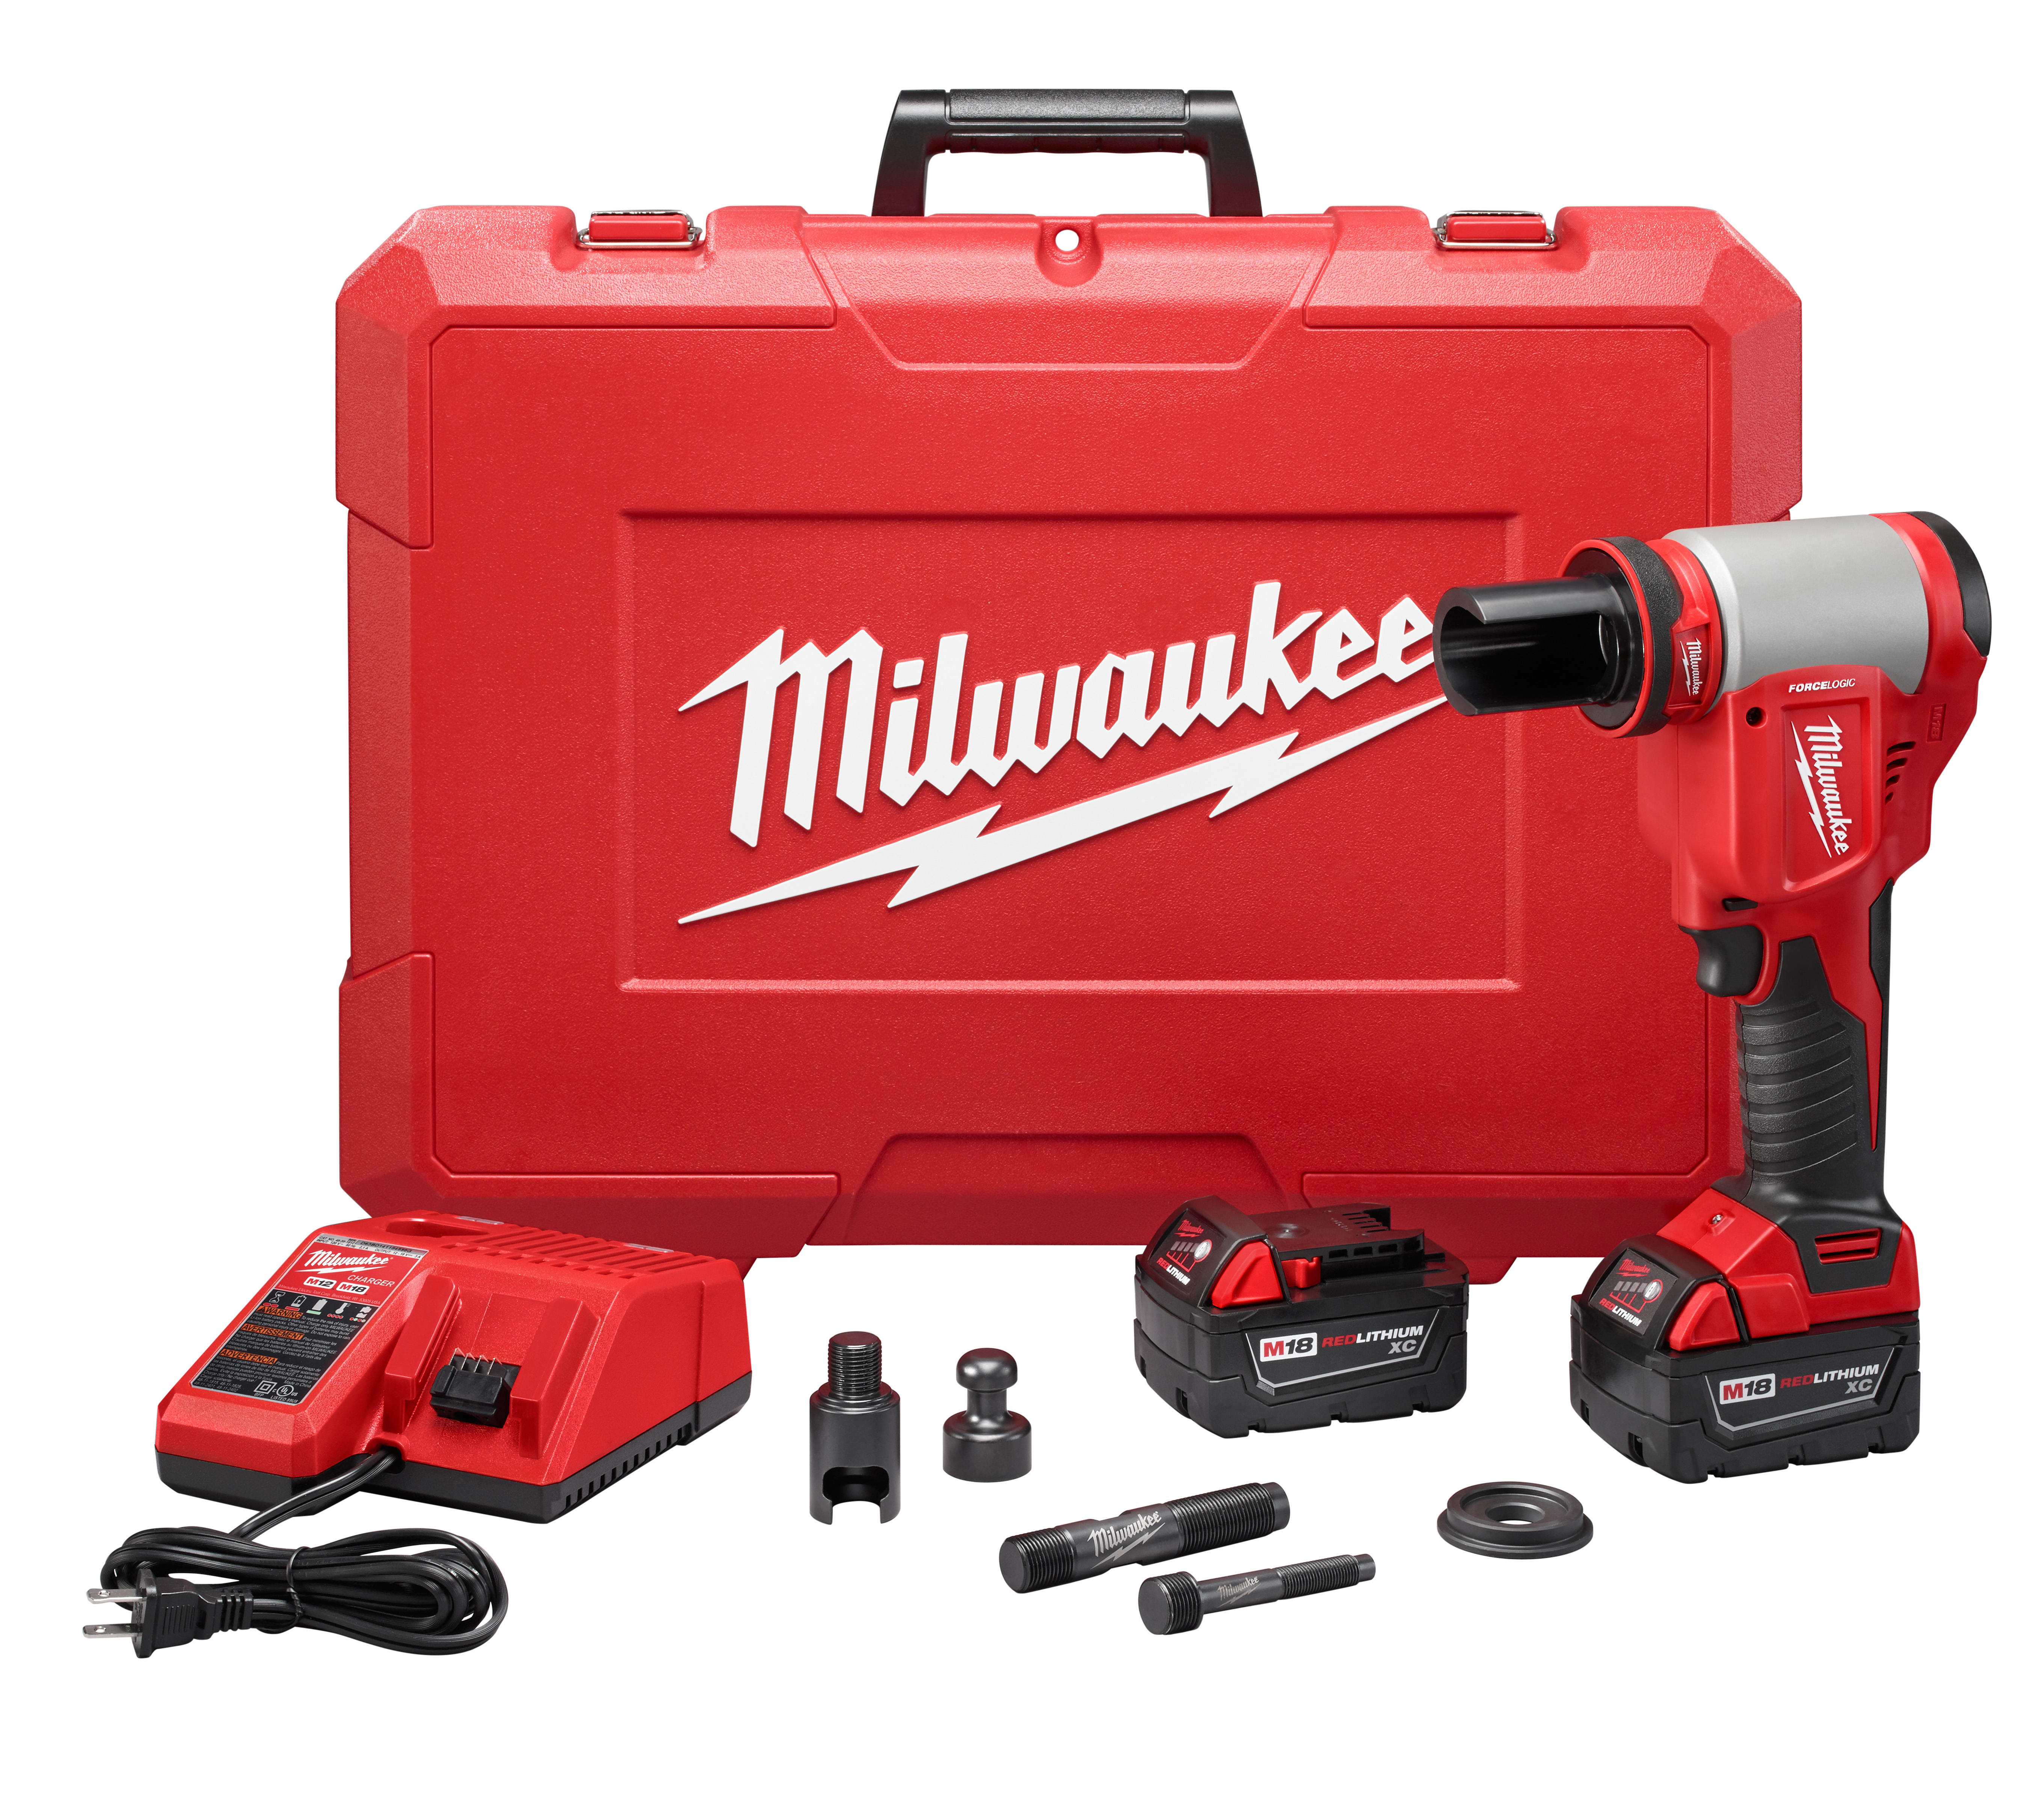 Milwaukee® M18™ 2676-20 FORCE LOGIC™ Hydraulic Knockout Tool Kit, 1/2 to 4 in Mild Steel/Stainless Steel Max Cutting, 13.63 in OAL